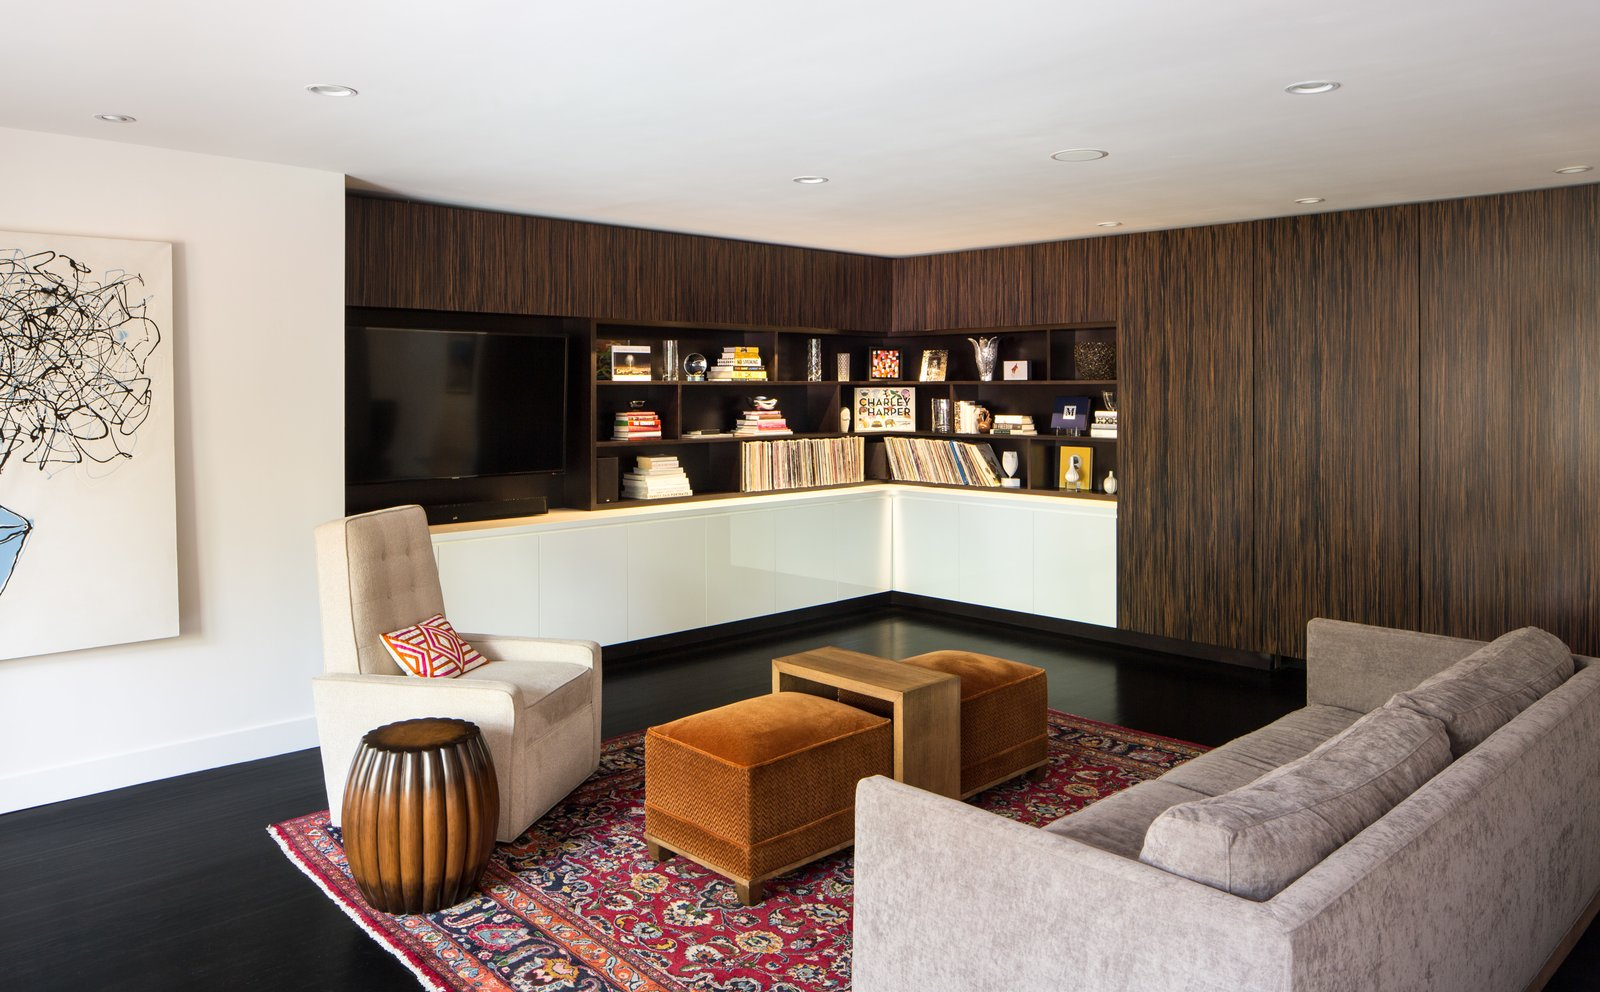 Living Room, Media Cabinet, Storage, Bar, Sofa, Chair, Ceiling Lighting, and Dark Hardwood Floor Family Room with Built-In Cabinets and Hidden Bar  Donner Residence by Design Platform